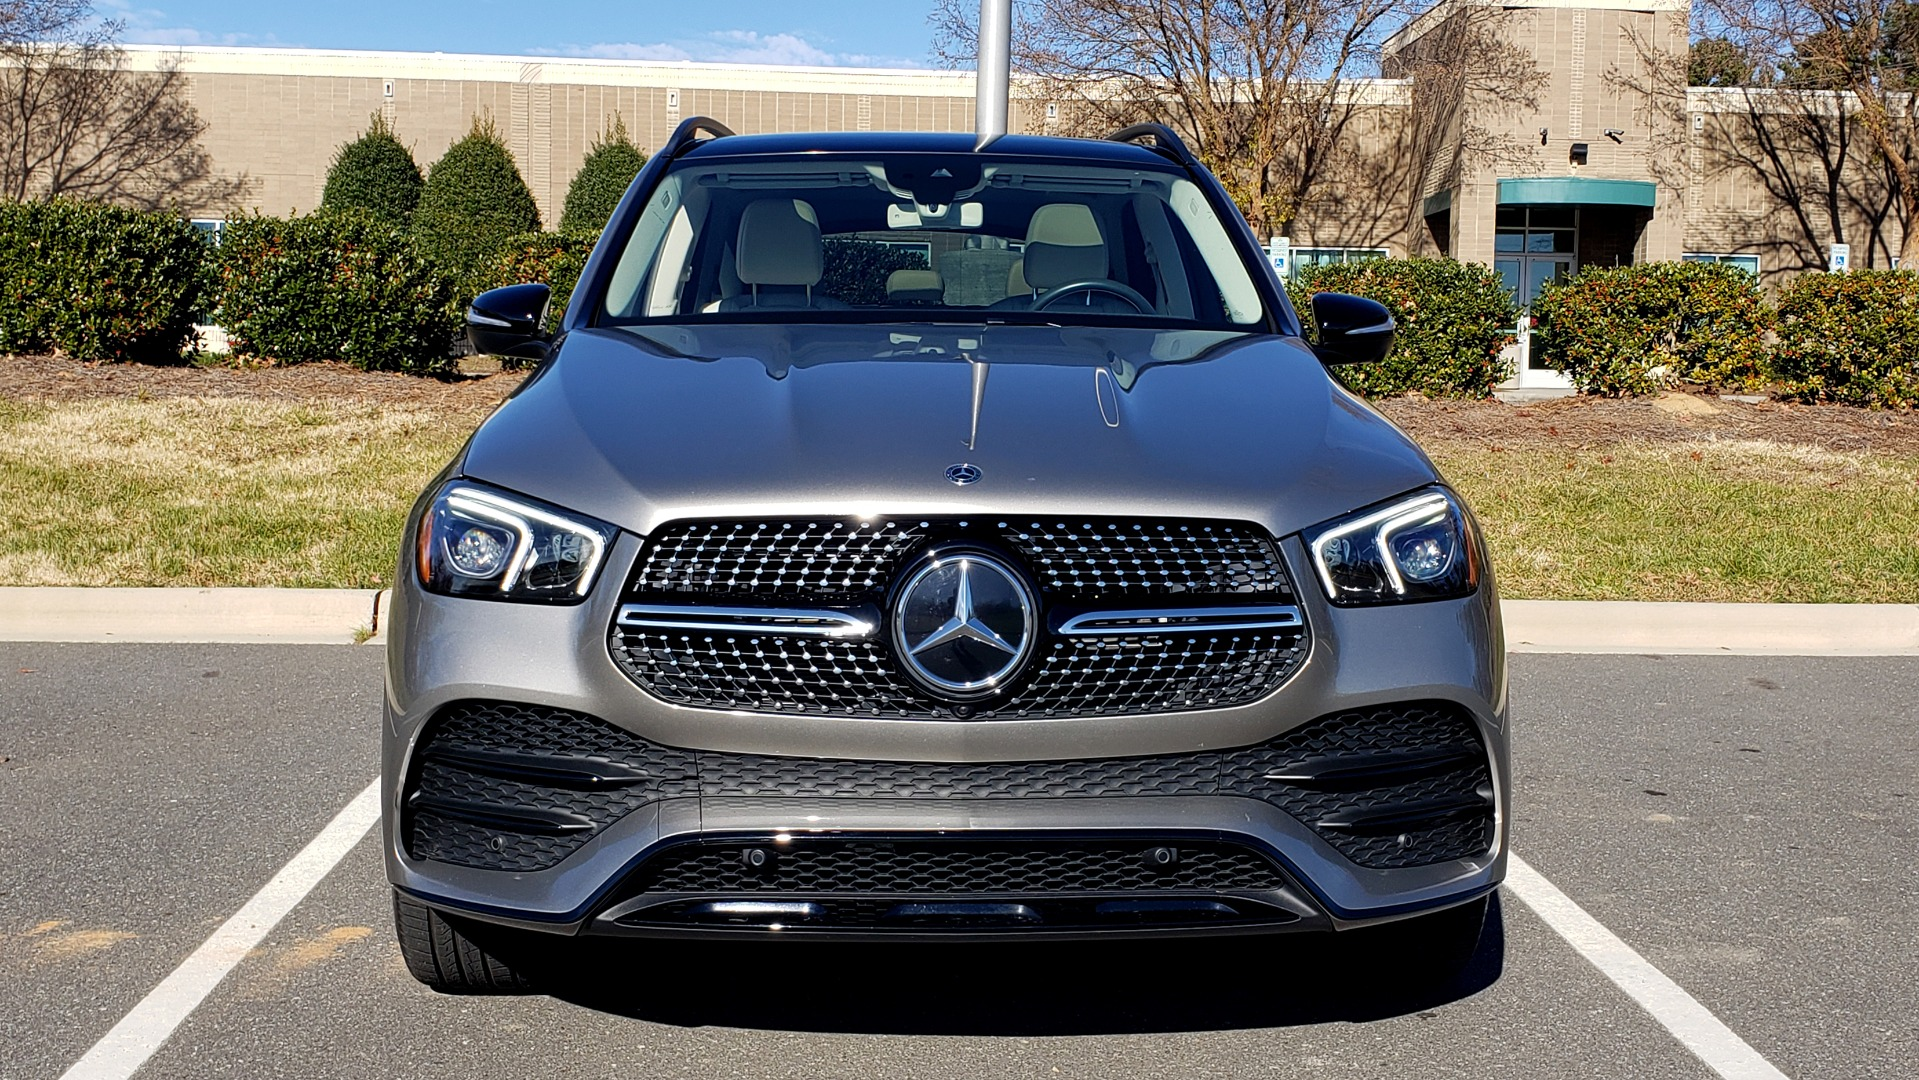 Used 2020 Mercedes-Benz GLE 350 PREMIUM / NAV / PARK ASST / NIGHT PKG / AMG LINE EXT / REARVIEW for sale Sold at Formula Imports in Charlotte NC 28227 27